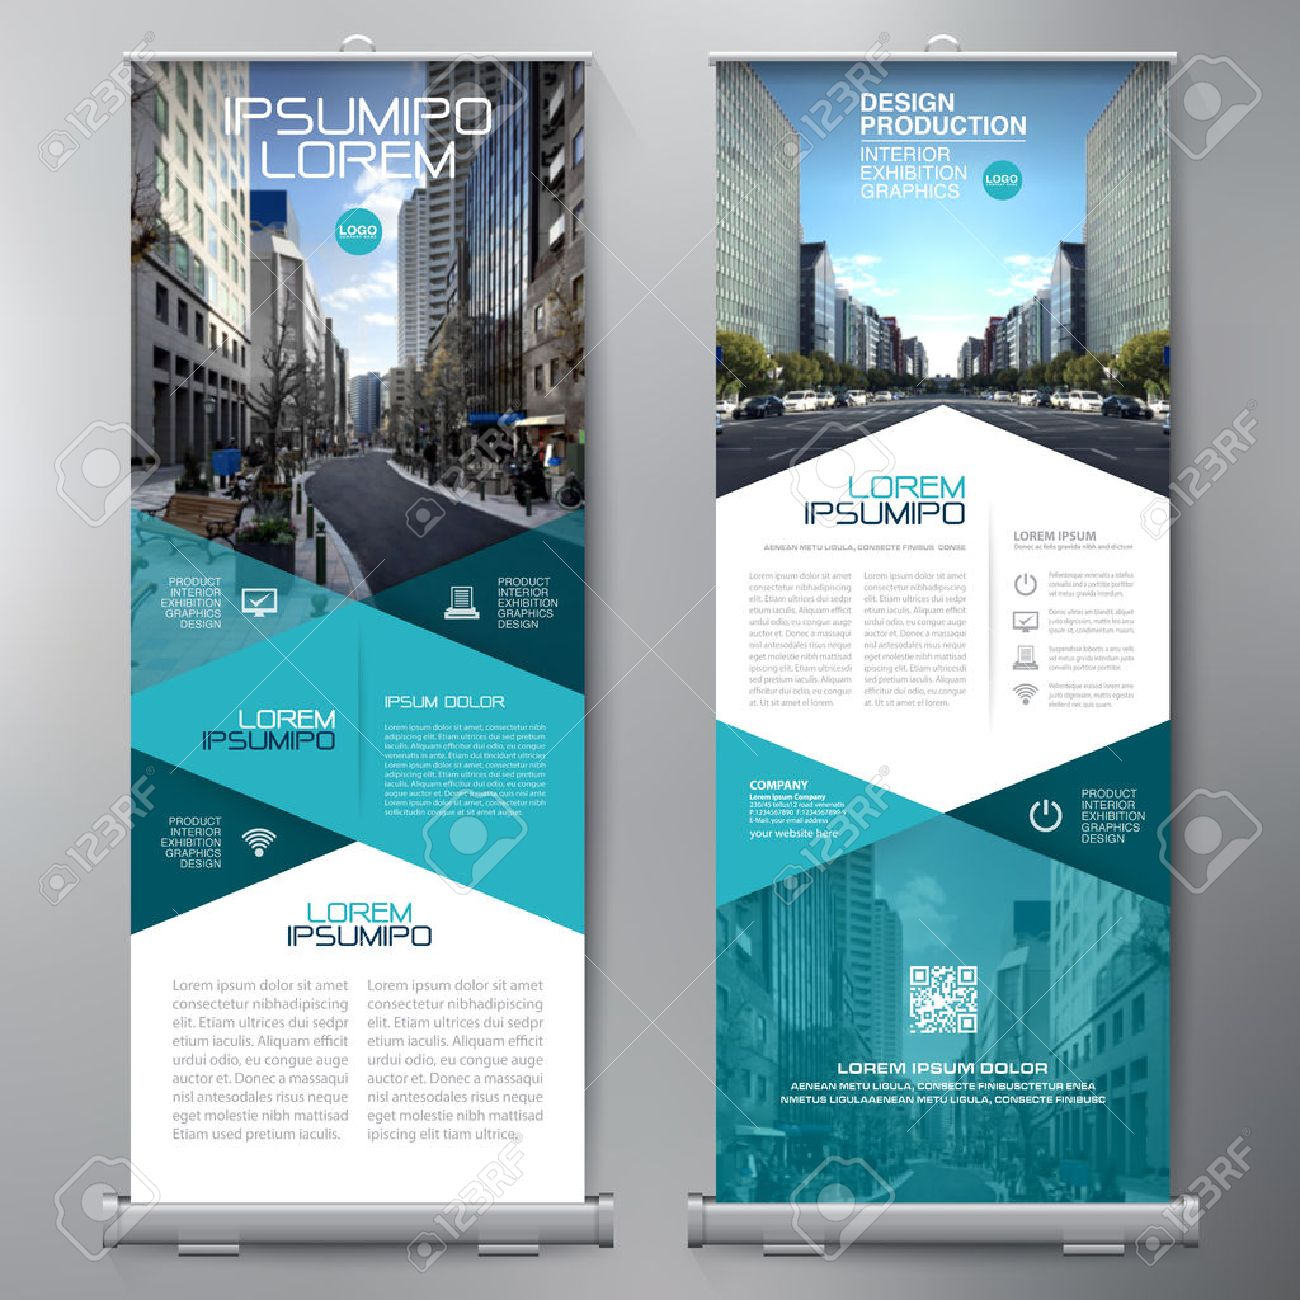 Rollup Business Roll Up Standee Design Banner Template Presentation